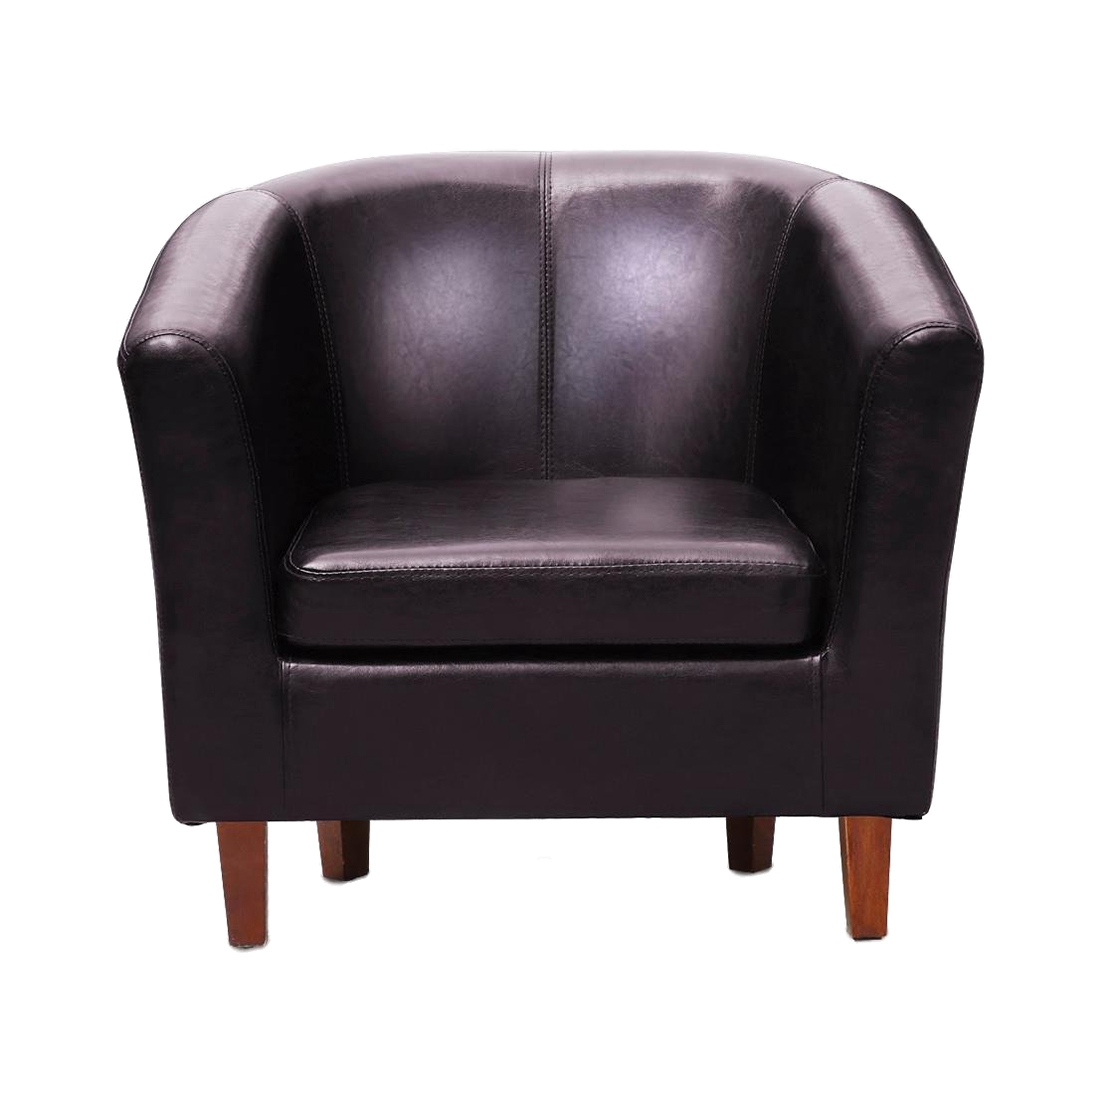 Living Room Arm Chairs Compare Prices On Living Room Armchairs Online Shopping Buy Low